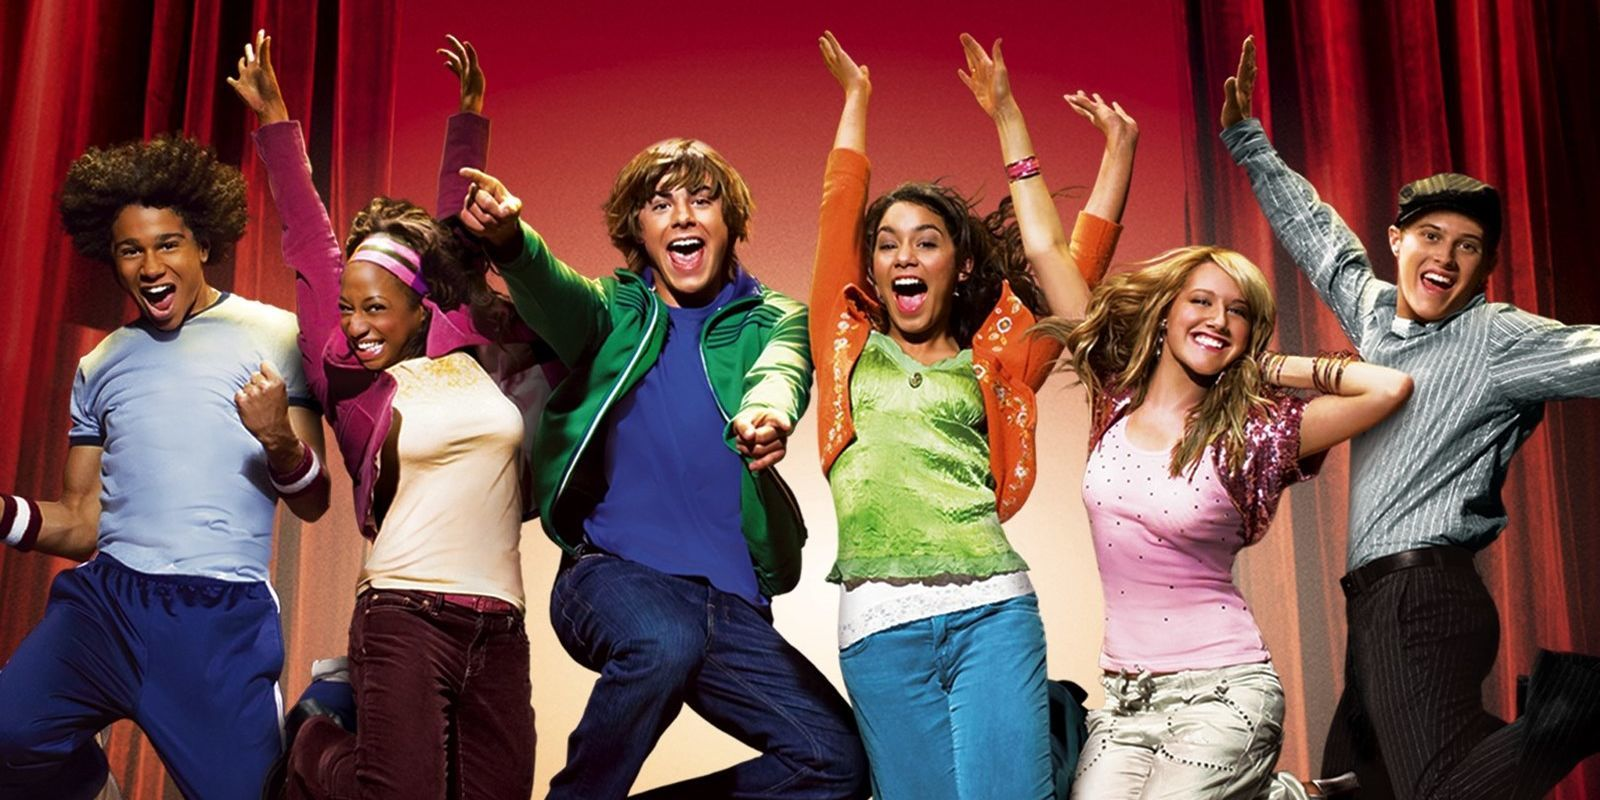 15 Mind Blowing High School Musical Facts That Will Make